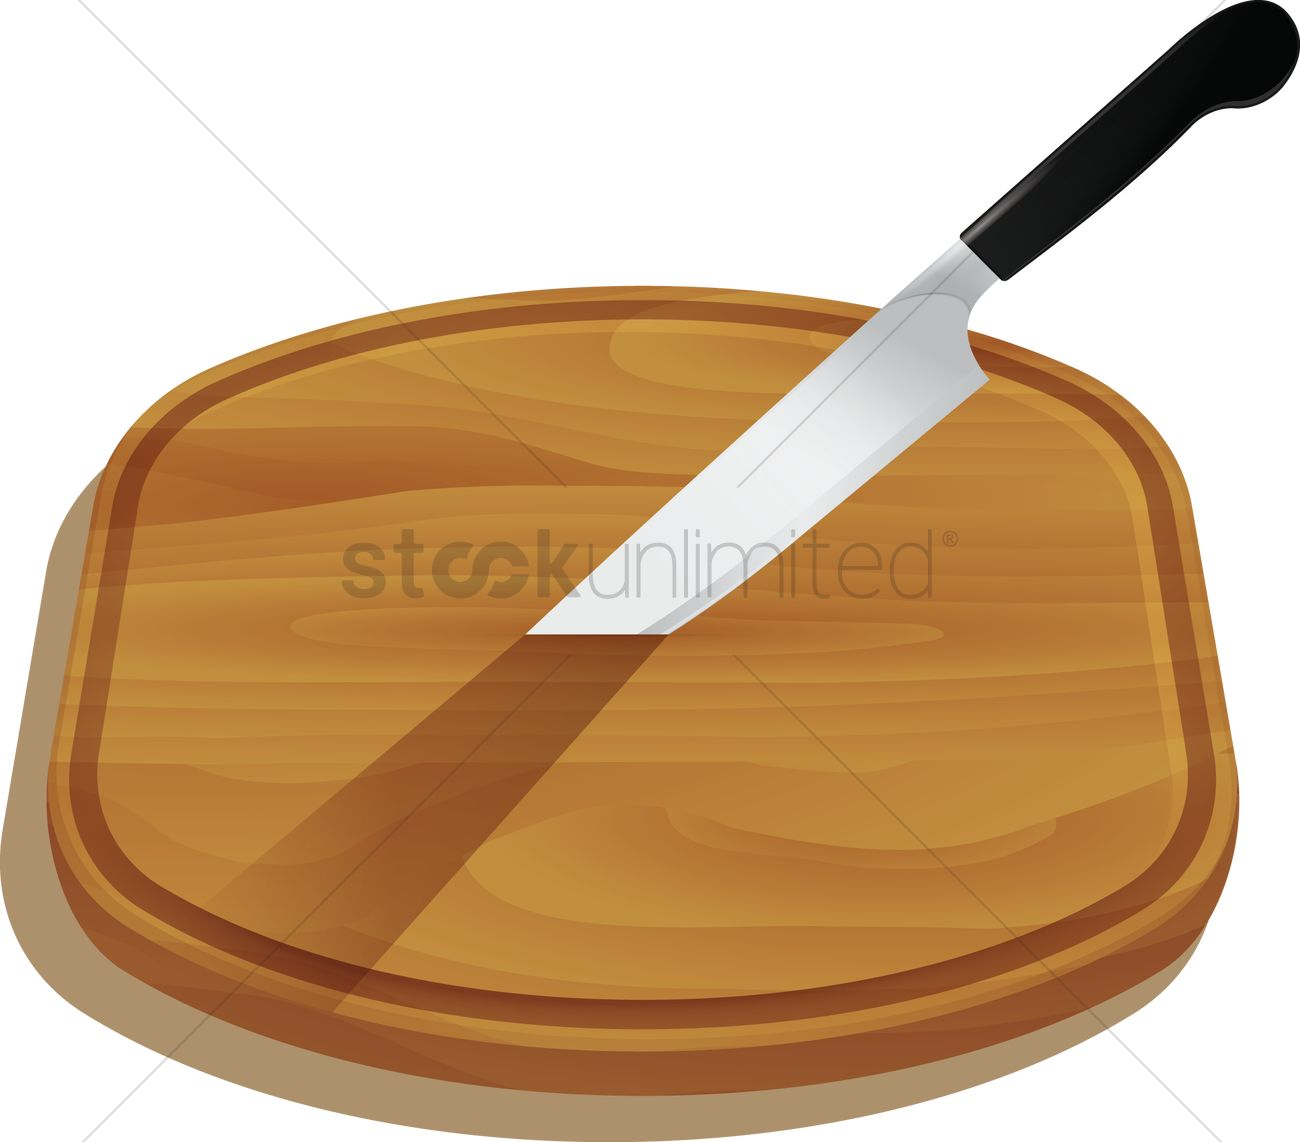 Chopping Board and Knife Clip Art